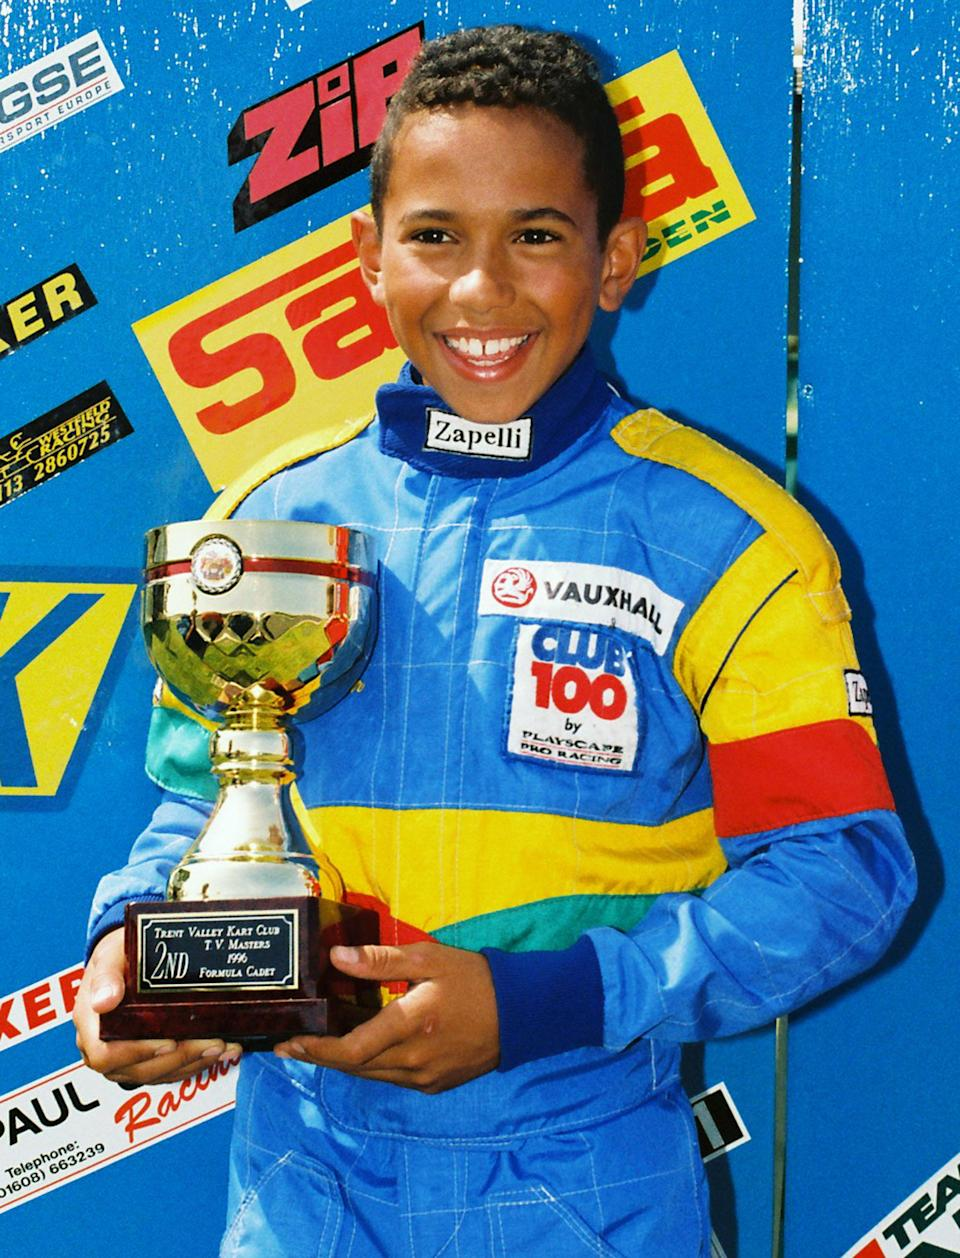 Little boy blue: Lewis Hamilton picks up a Formula Cadet trophy in 1996 – and he's smiling, even though he came second